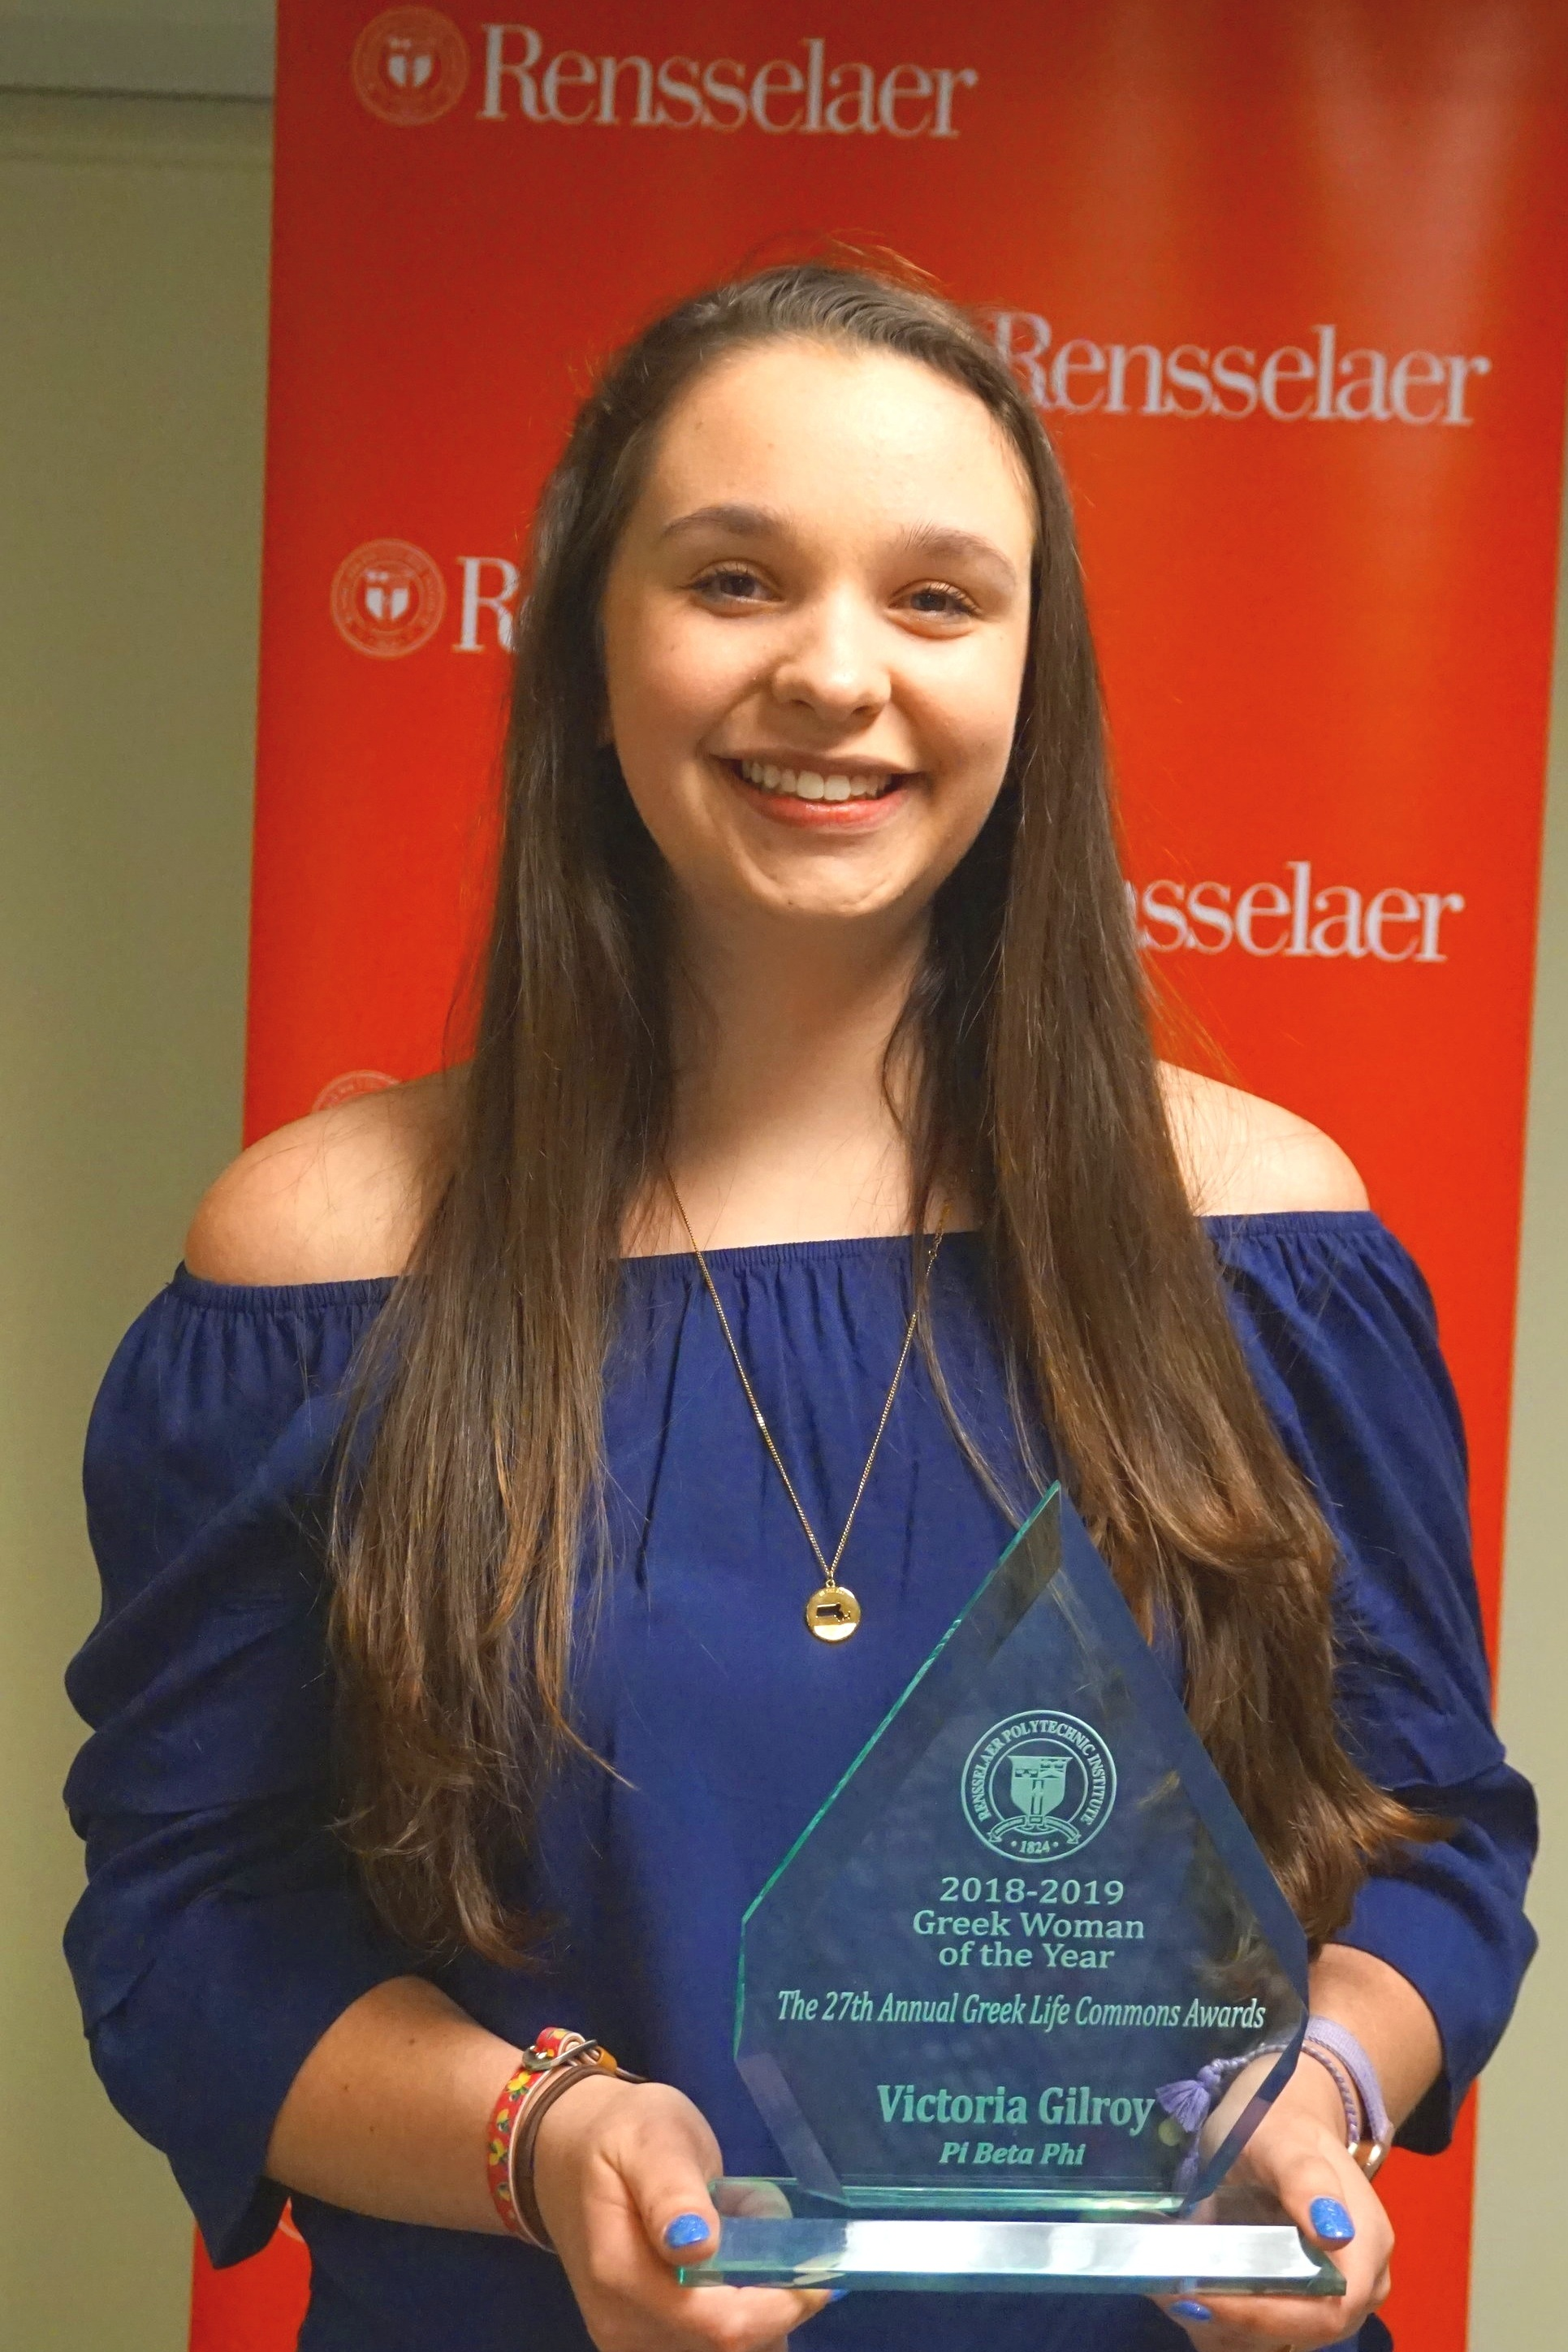 Greek Awards 2019 - The Panhellenic chapters won so many awards for 2018. Our own Panhellenic President, Tori Gilroy, won Greek Woman of the Year! The 2018-2019 President's Cup was awarded to Pi Beta Phi, making them chapter of the year!